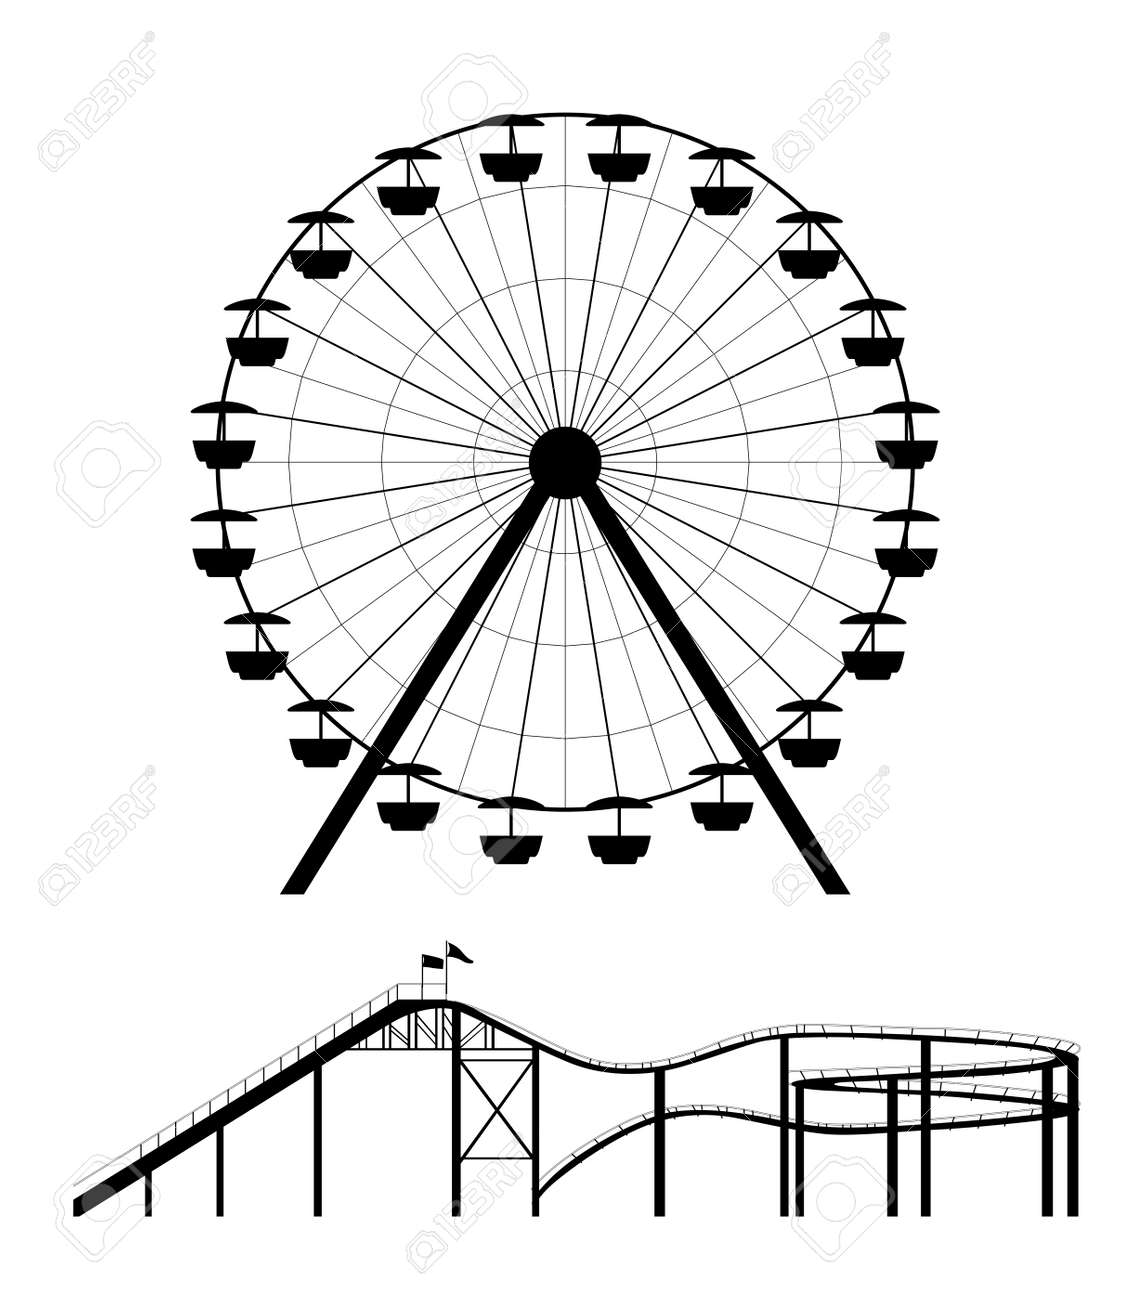 Ferris Wheel And Roller Coaster Silhouette Vector Illustration Royalty Free Cliparts Vectors And Stock Illustration Image 46310787